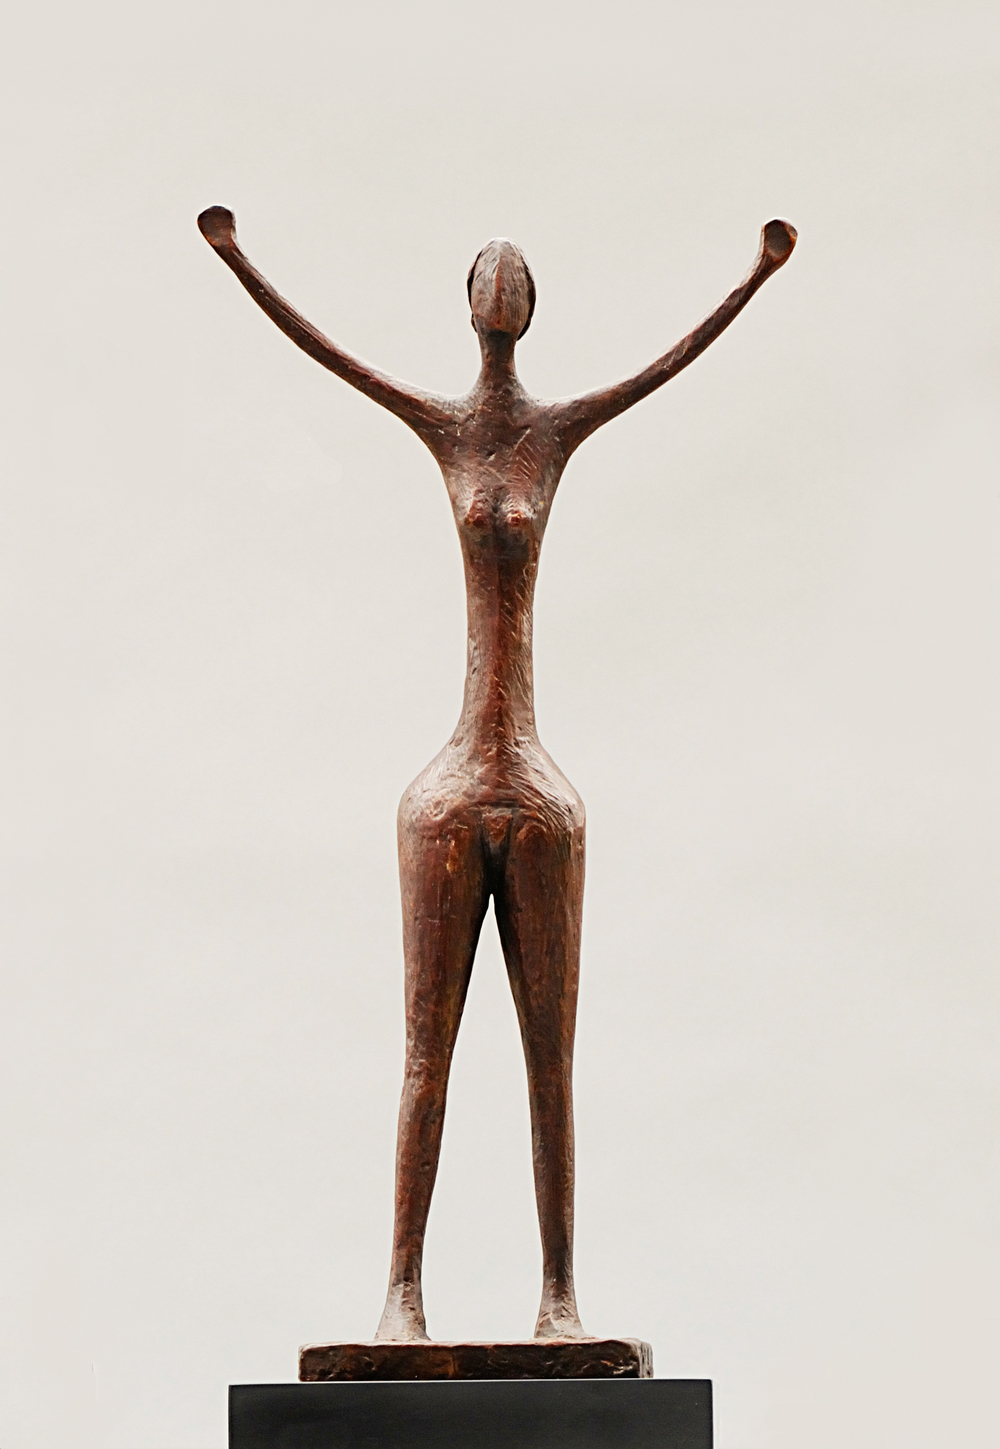 Breon O'Casey_-_Figure with Arms Up.jpg